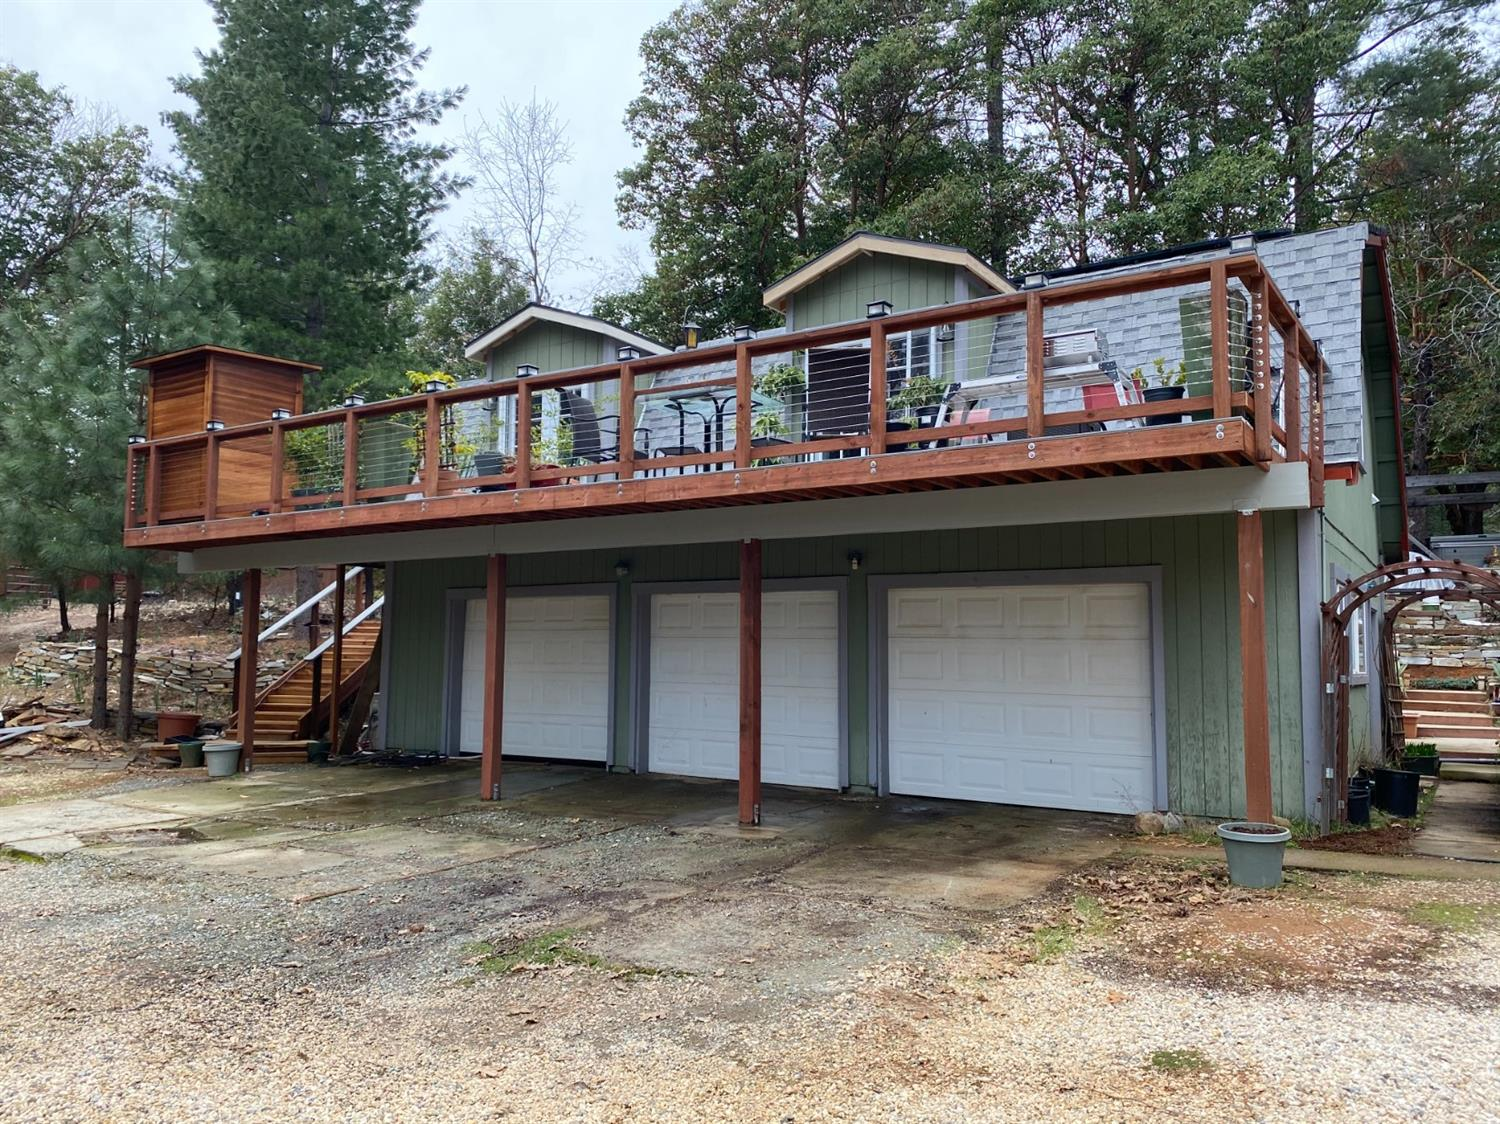 Photo of 6276 Dickinson Road, Placerville, CA 95667